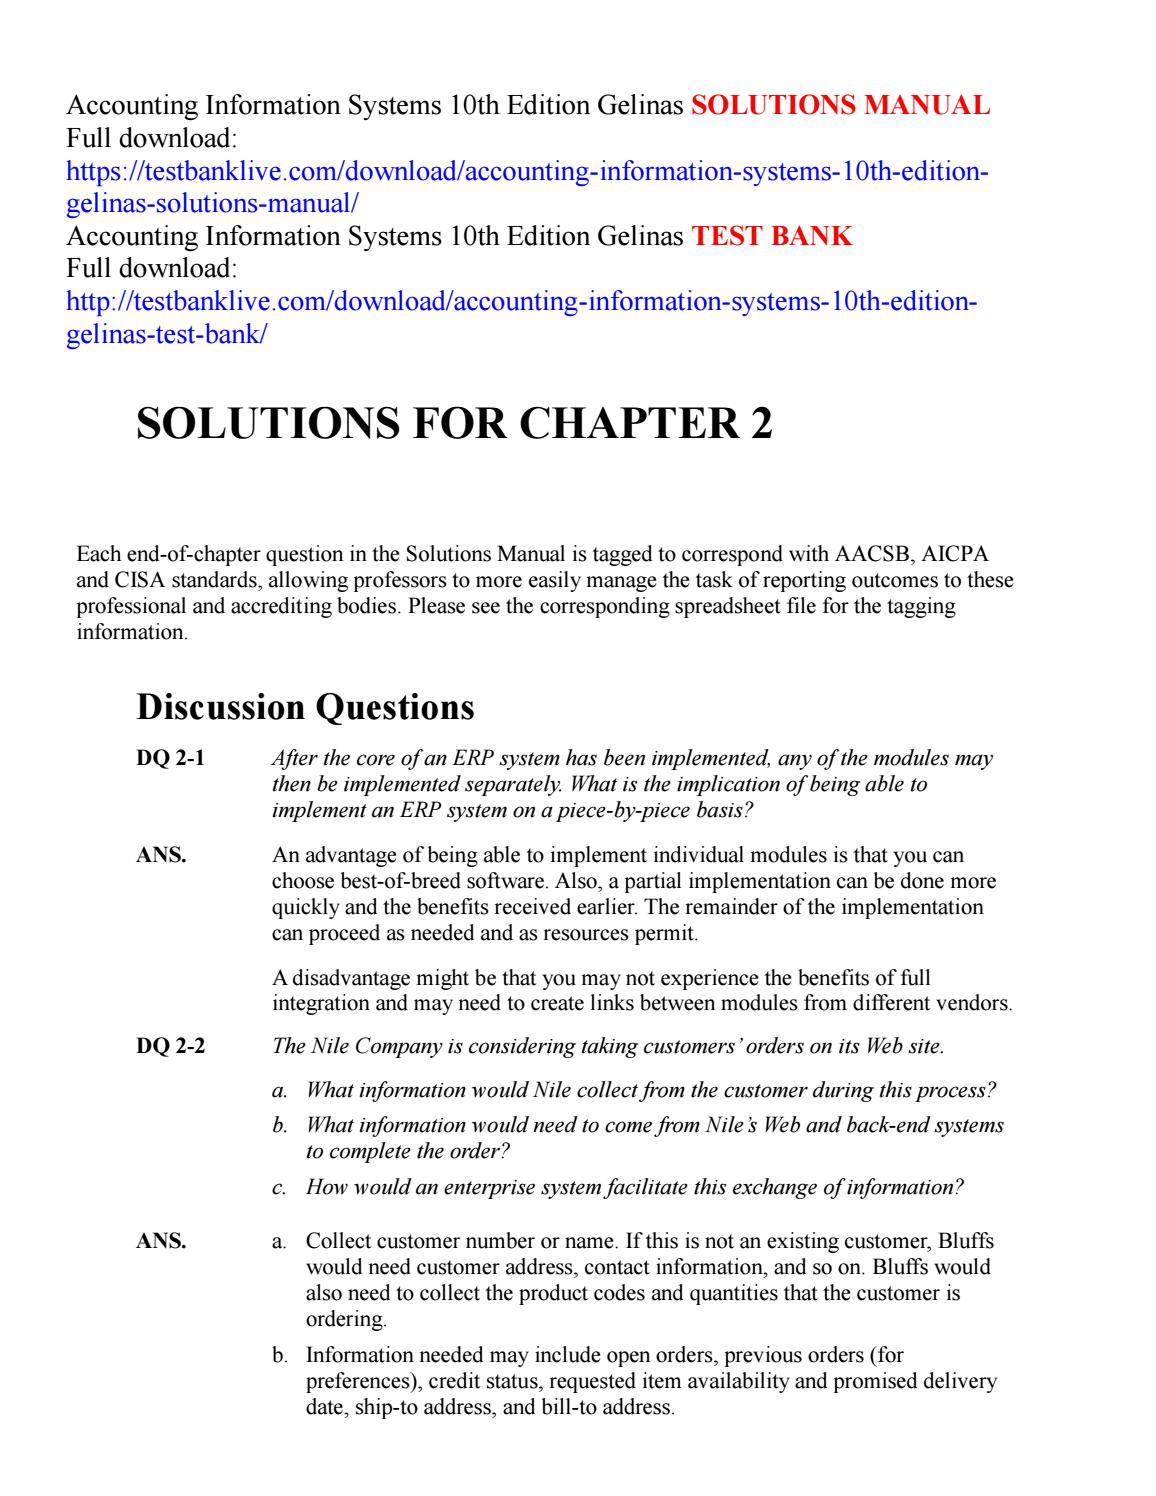 Accounting information systems 10th edition gelinas solutions manual by  garenni - issuu